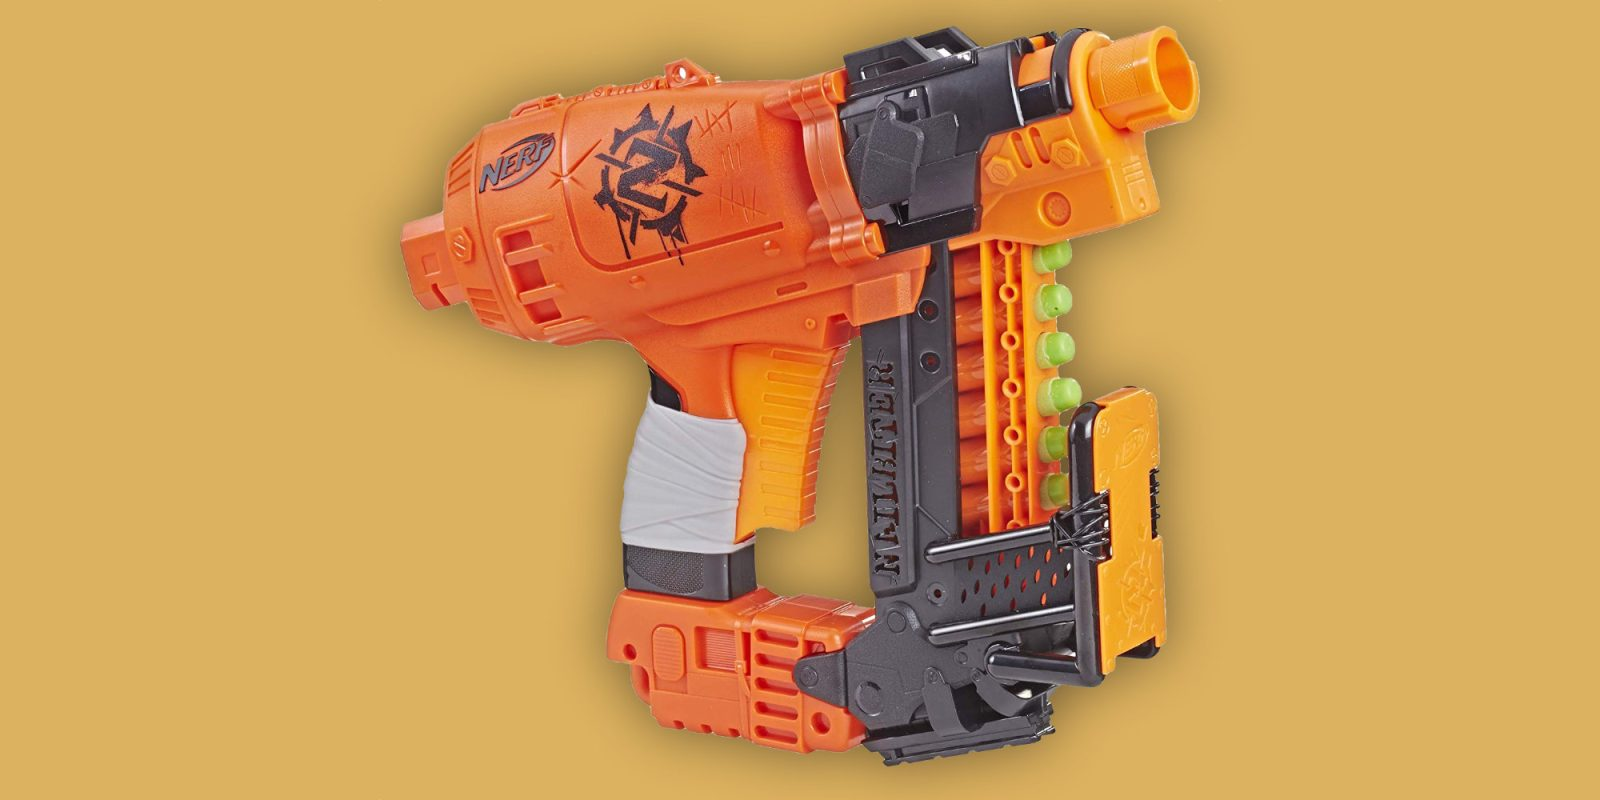 Snag a Nerf Nailbiter Blaster for just $12 at Amazon (Save 20%)